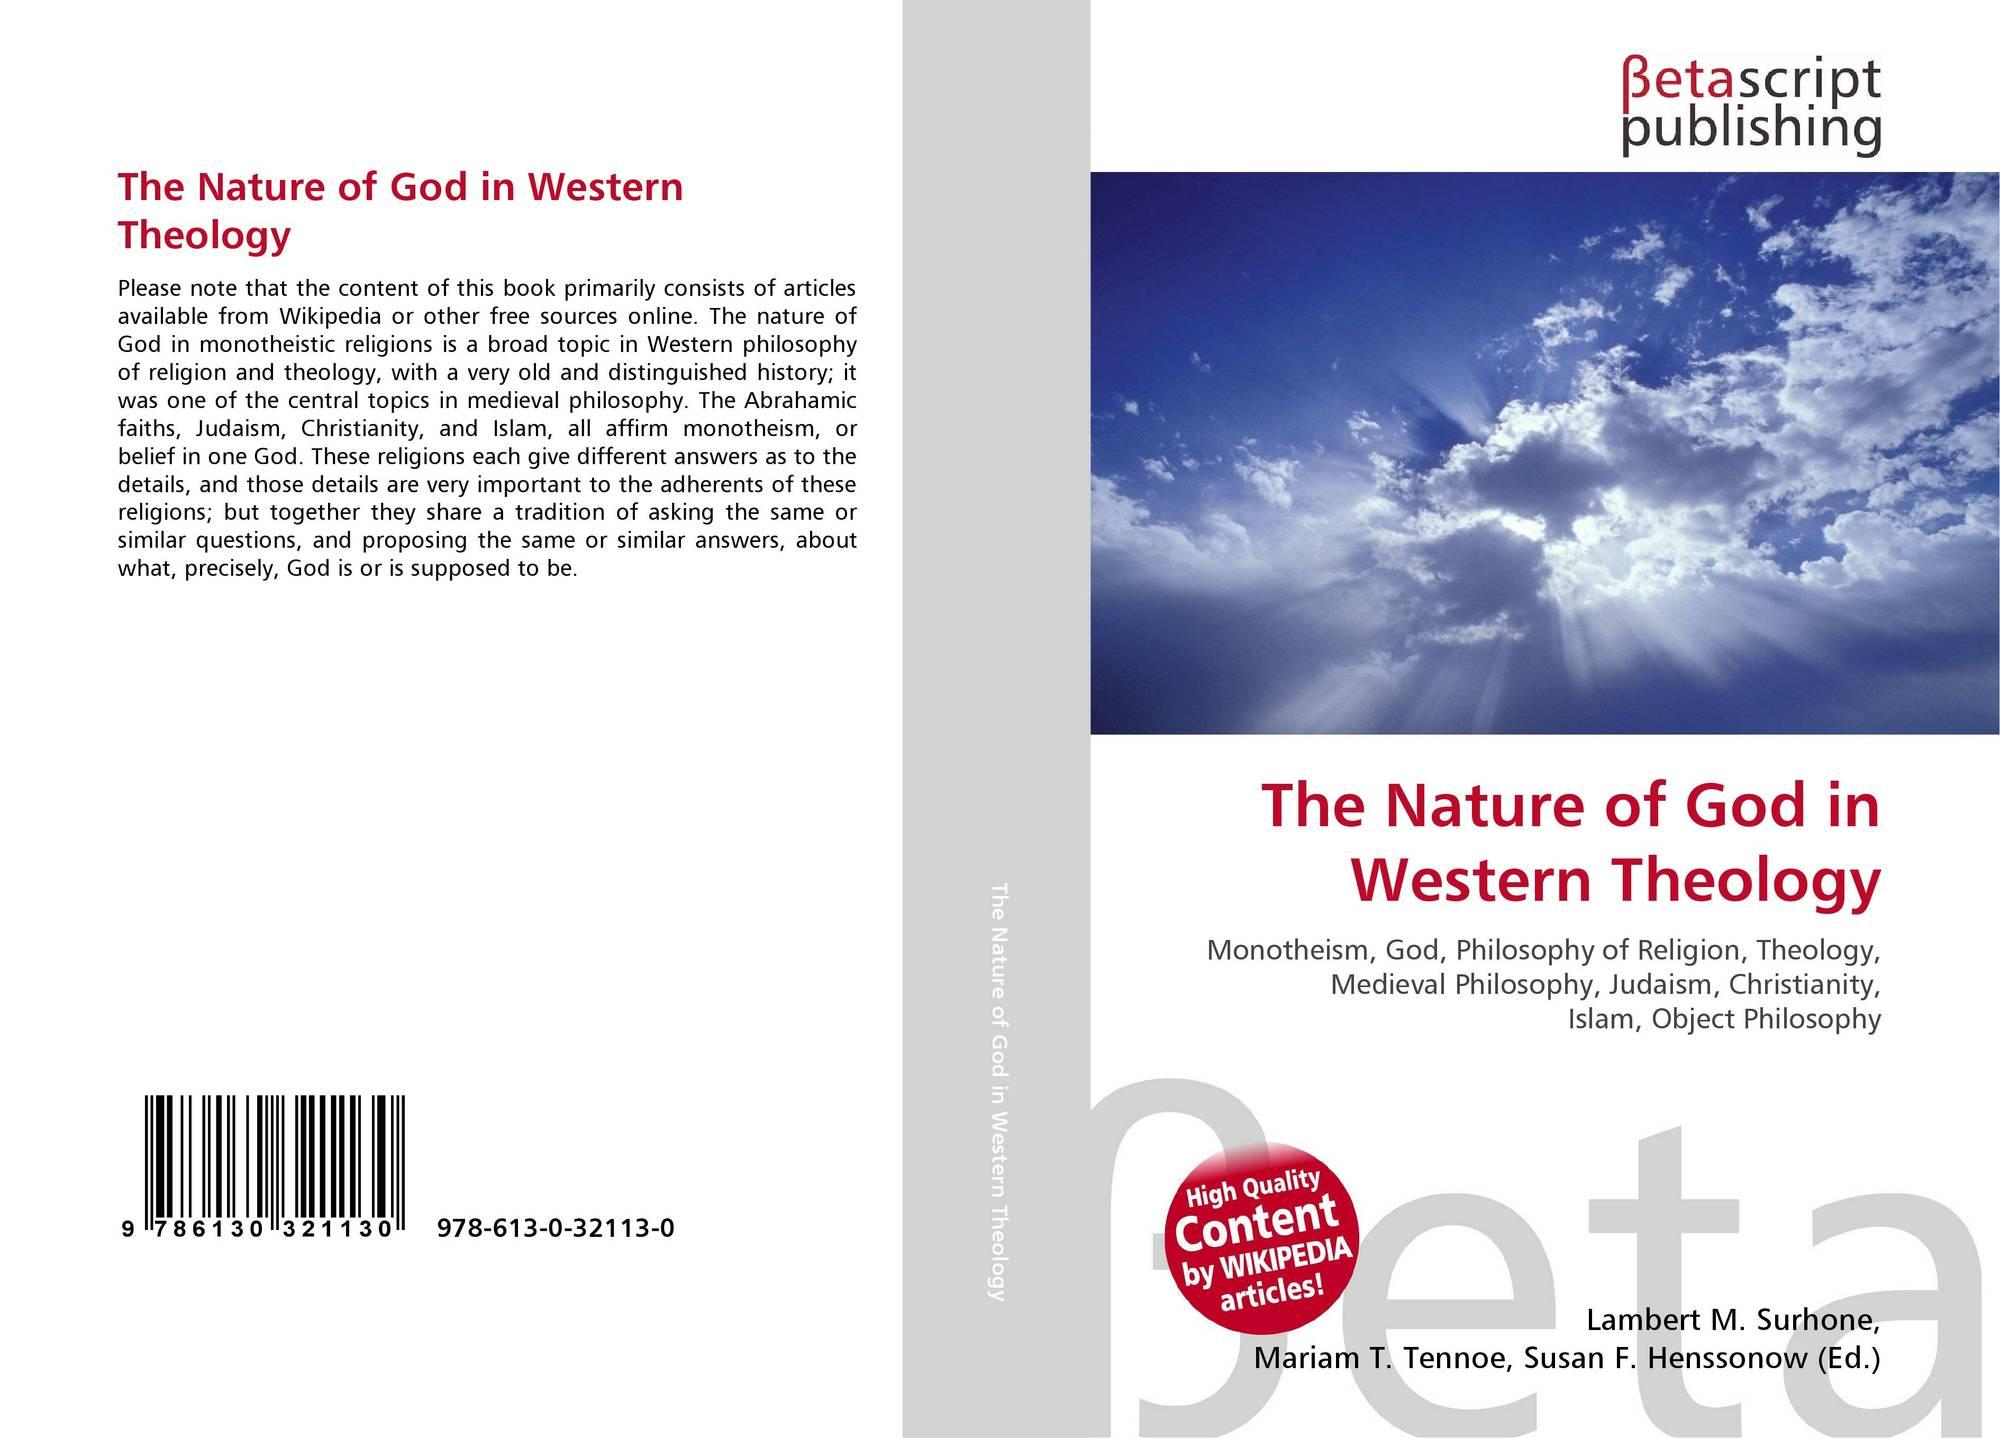 an analysis of the nature of god in christianity God's 'nature' means his characteristics, his attributes, his qualities i read somewhere that man can't really know anything about the nature of god among others, smith, george h atheism: the case against god.